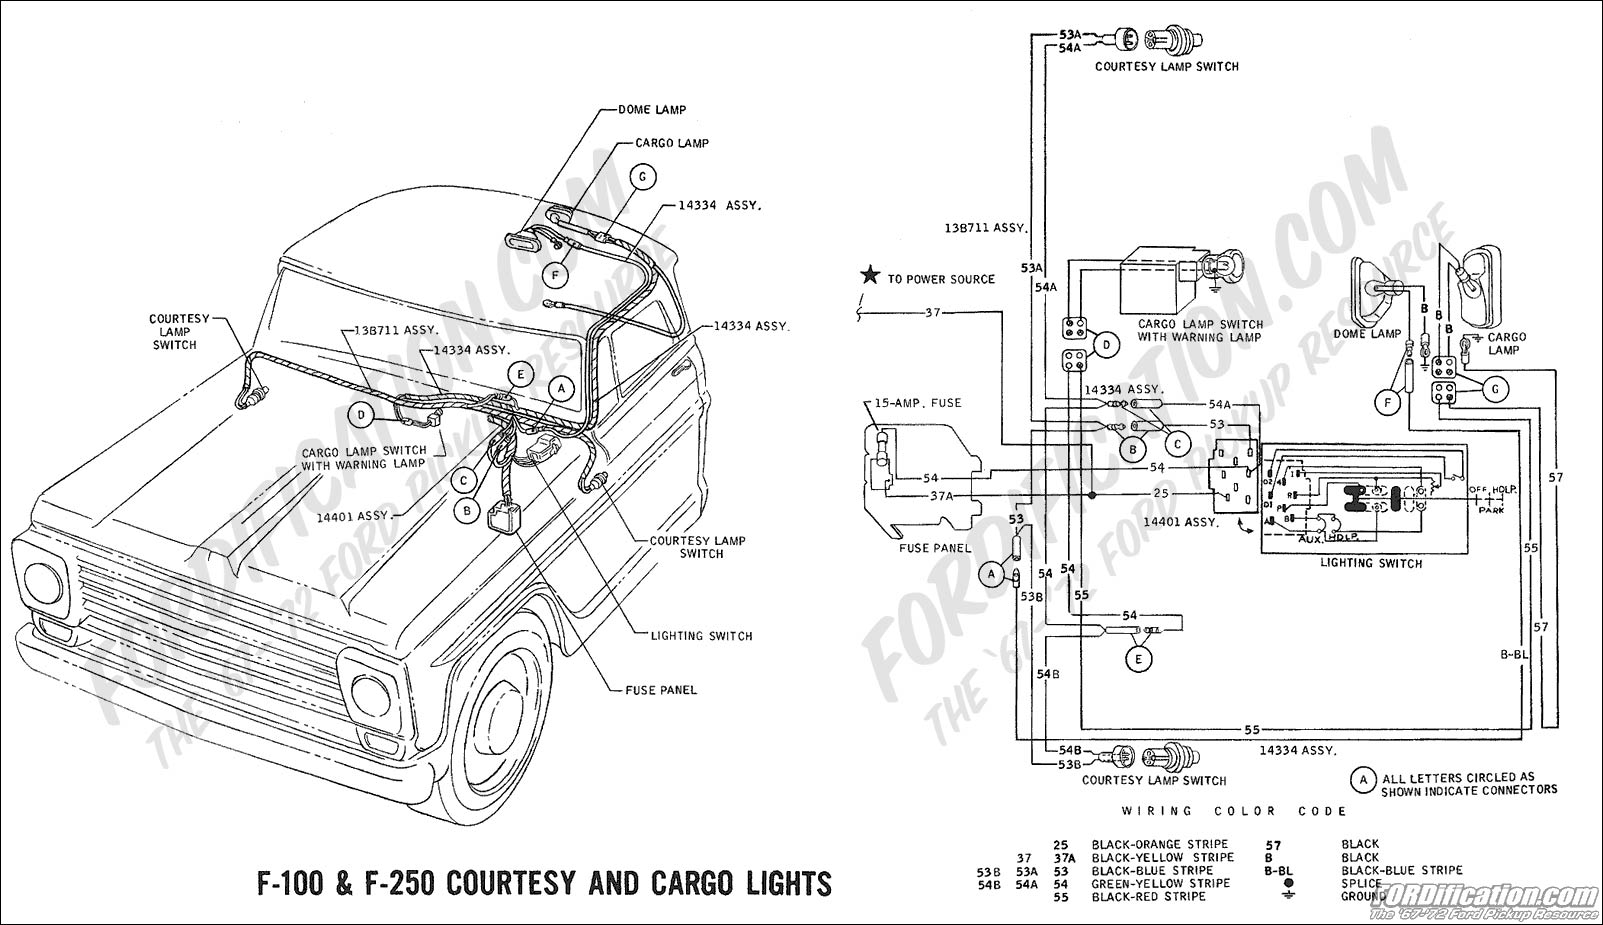 Ford Truck Technical Drawings And Schematics Section H Wiring 1966 Chevy Nova Dome Light Wire 1969 F 100 250 Courtesy Cargo Lights